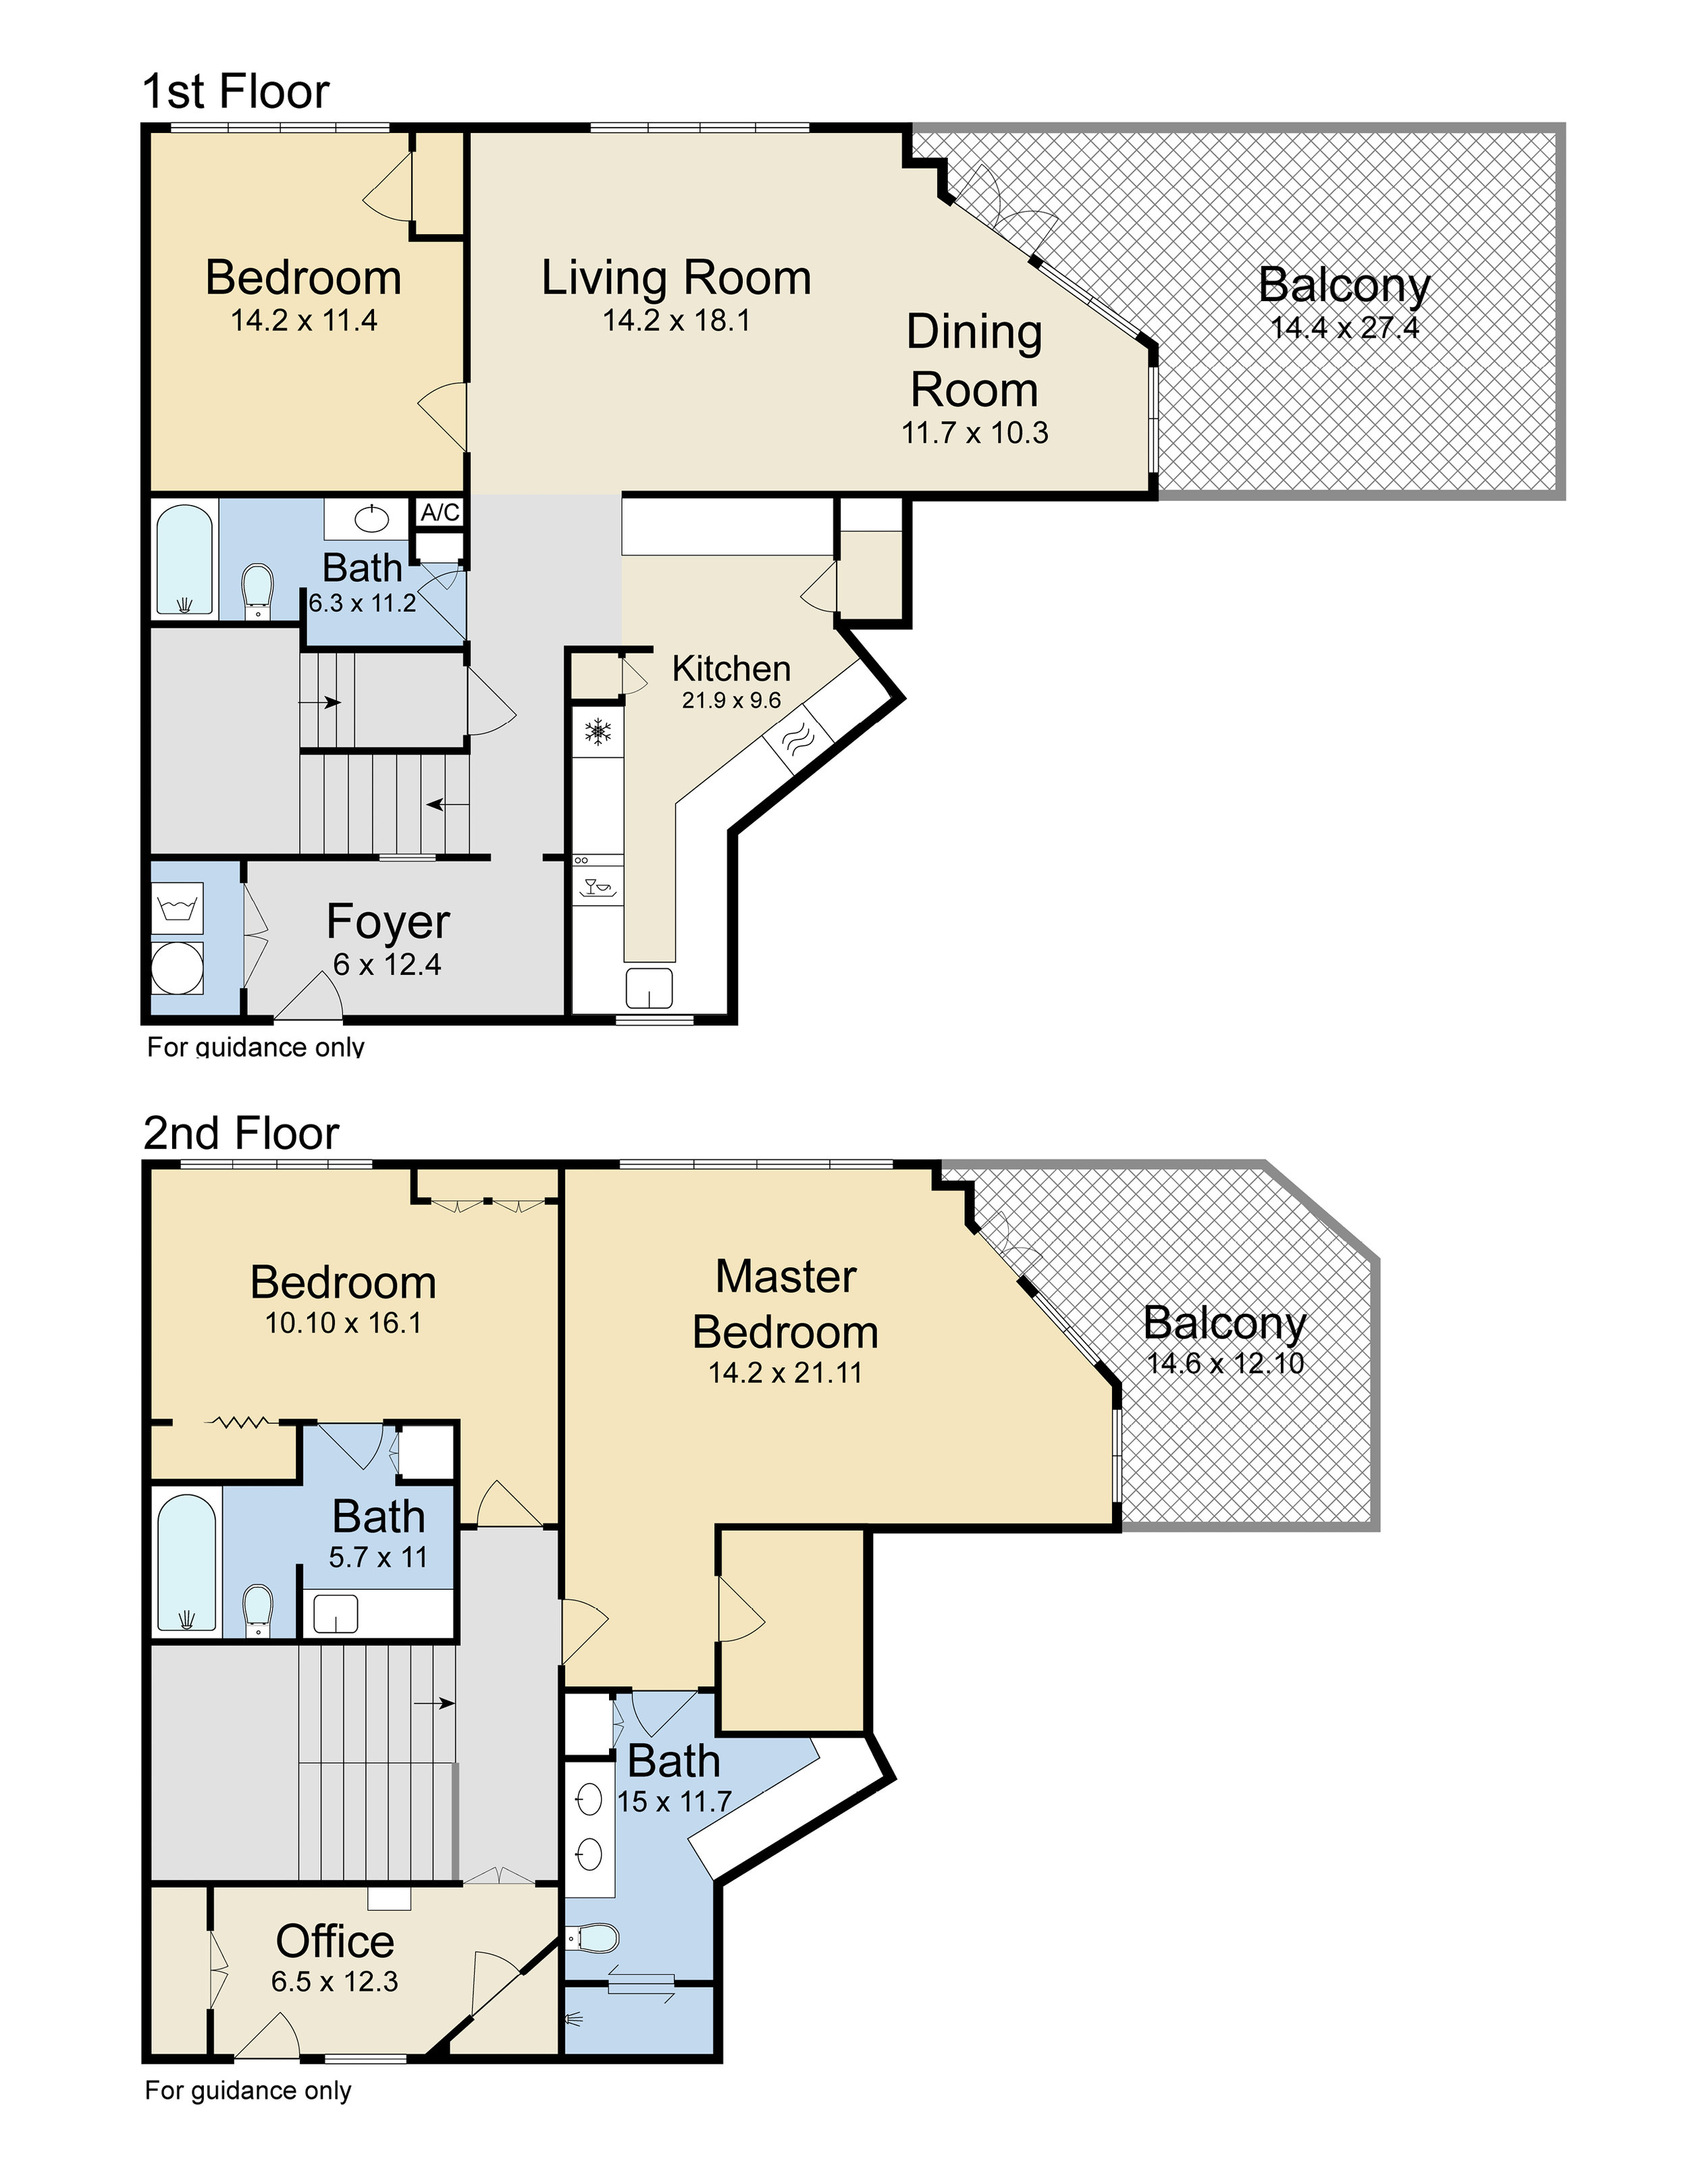 170_Walnut_2C_Floorplan.jpg